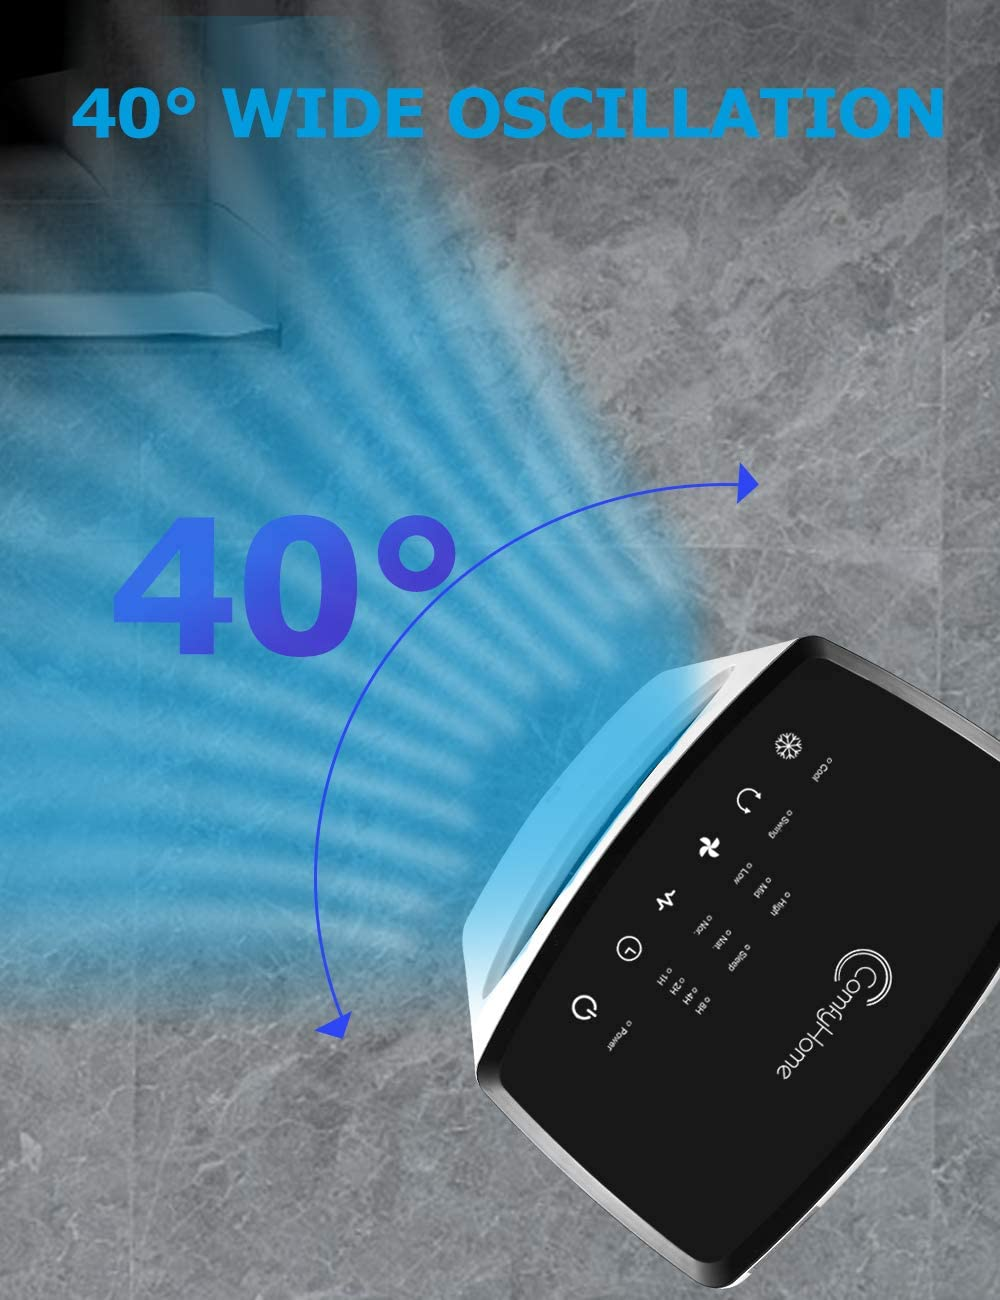 15H Timer 40/° Oscillation Remote Control for Home Office COMFYHOME 2-in-1 Air Conditioner Fan Bladeless Design 32 Evaporative Air Cooler w//Cooling/&Humidification Function 3 Wind Speeds 4 Modes